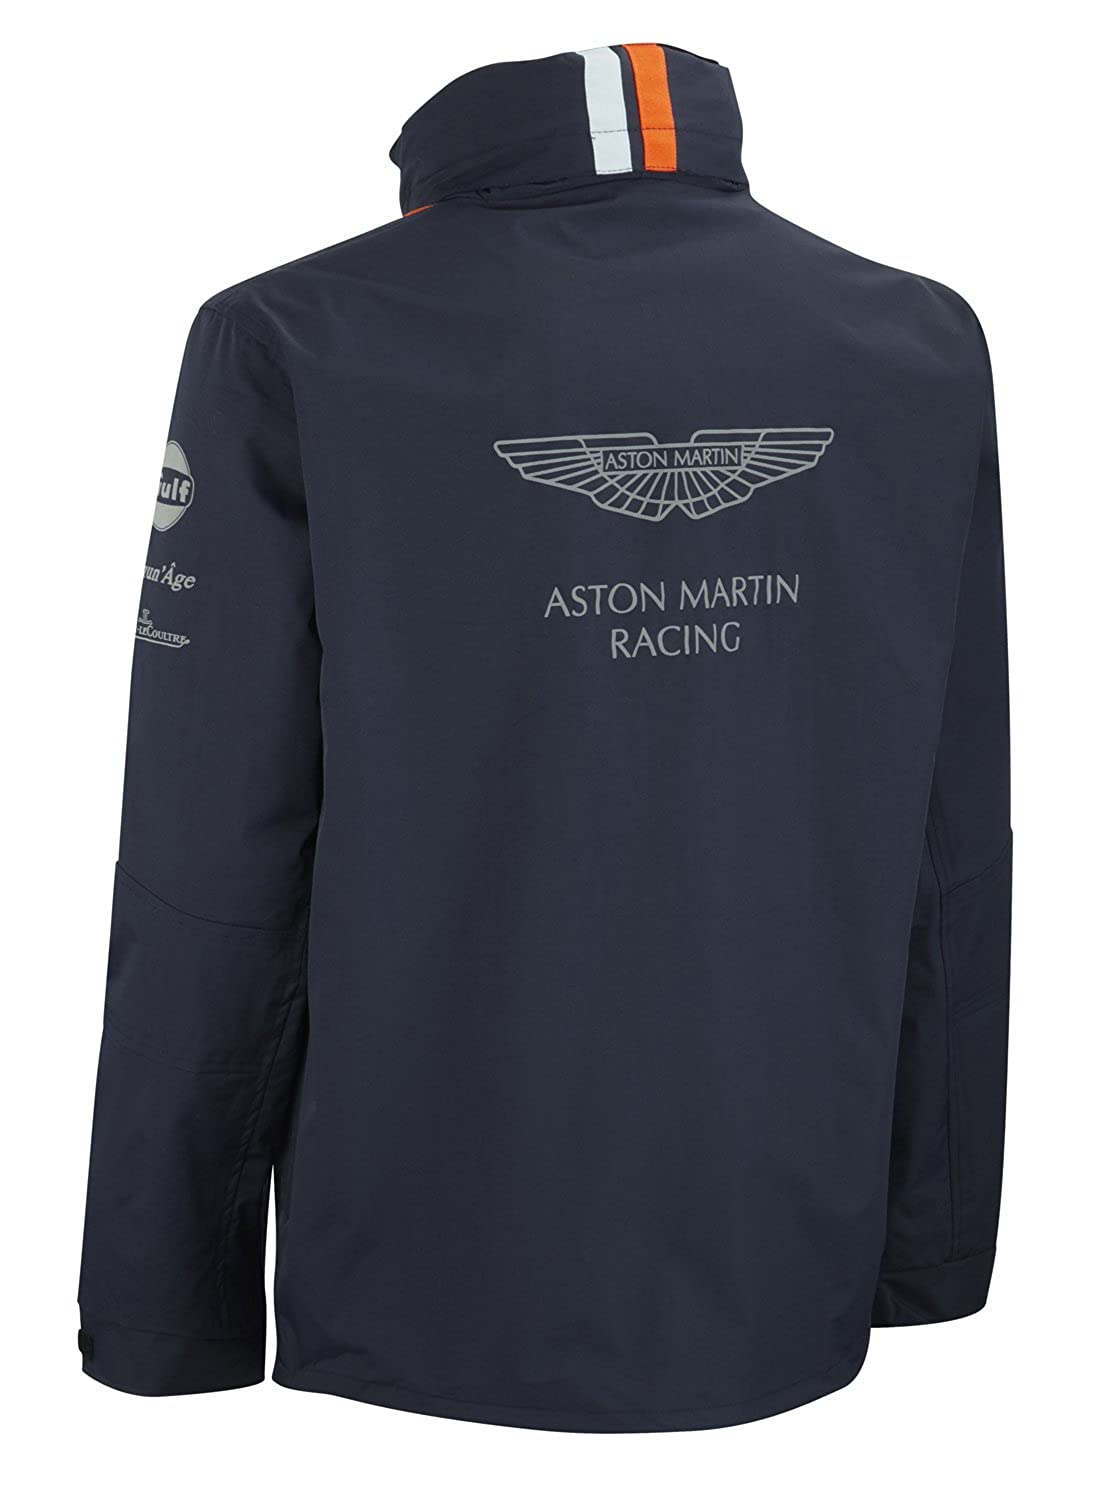 d1d19d1edaa Aston martin gulf team jacket sports outdoors jpg 1106x1500 Aston martin  racing jacket with hood